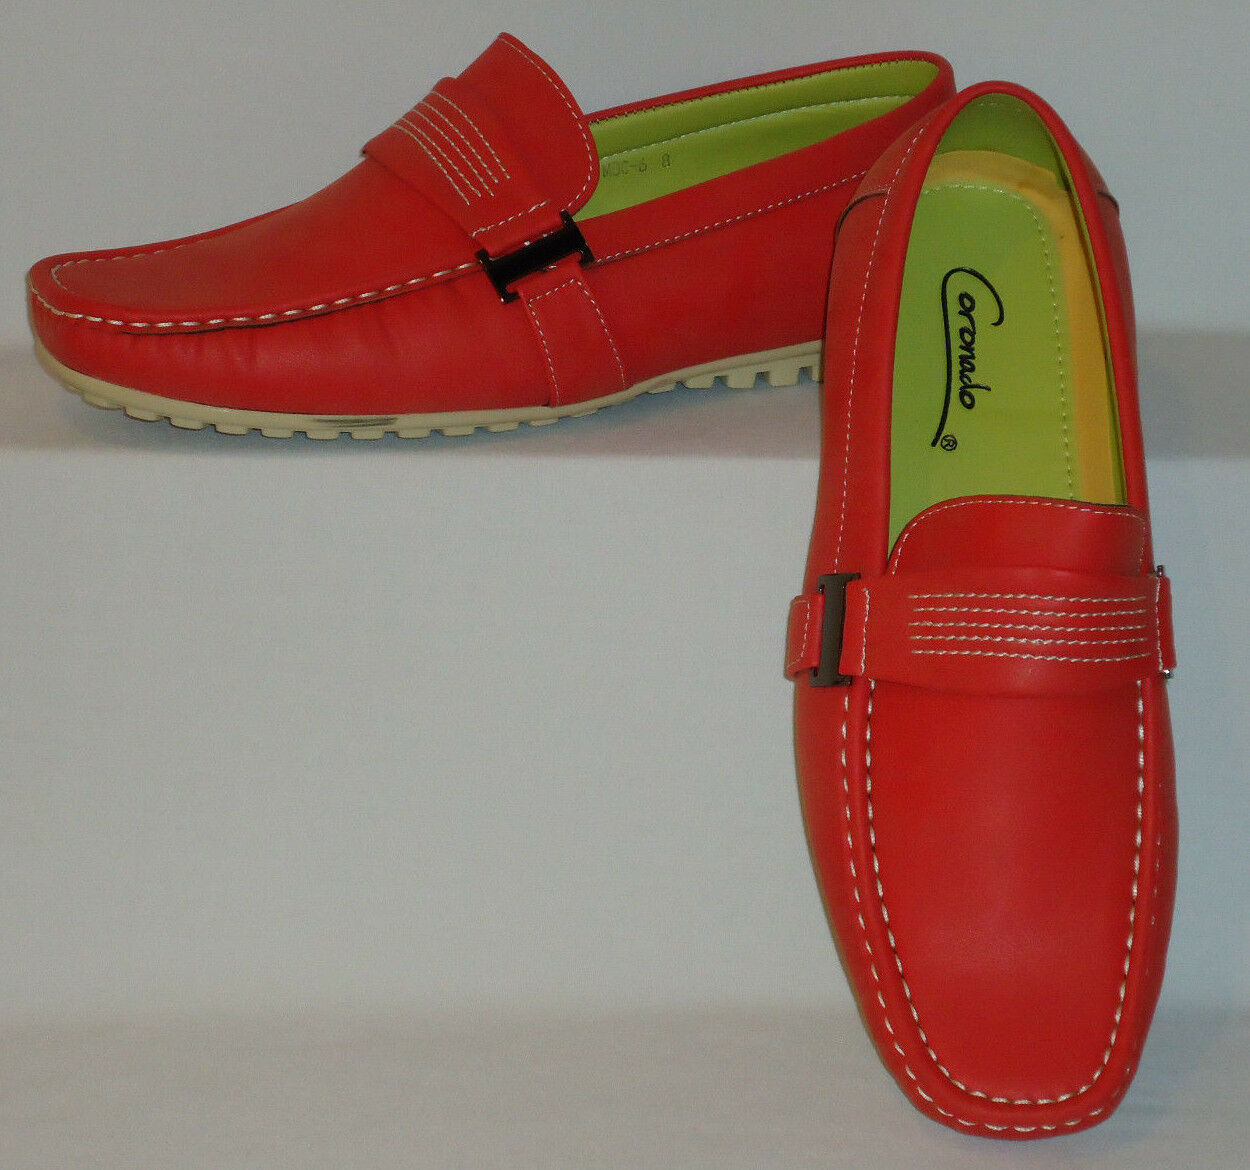 Mens Fun Red Color Stylish Boat Shoes Driving Mocs Soft Touch Feel Moc6-Red